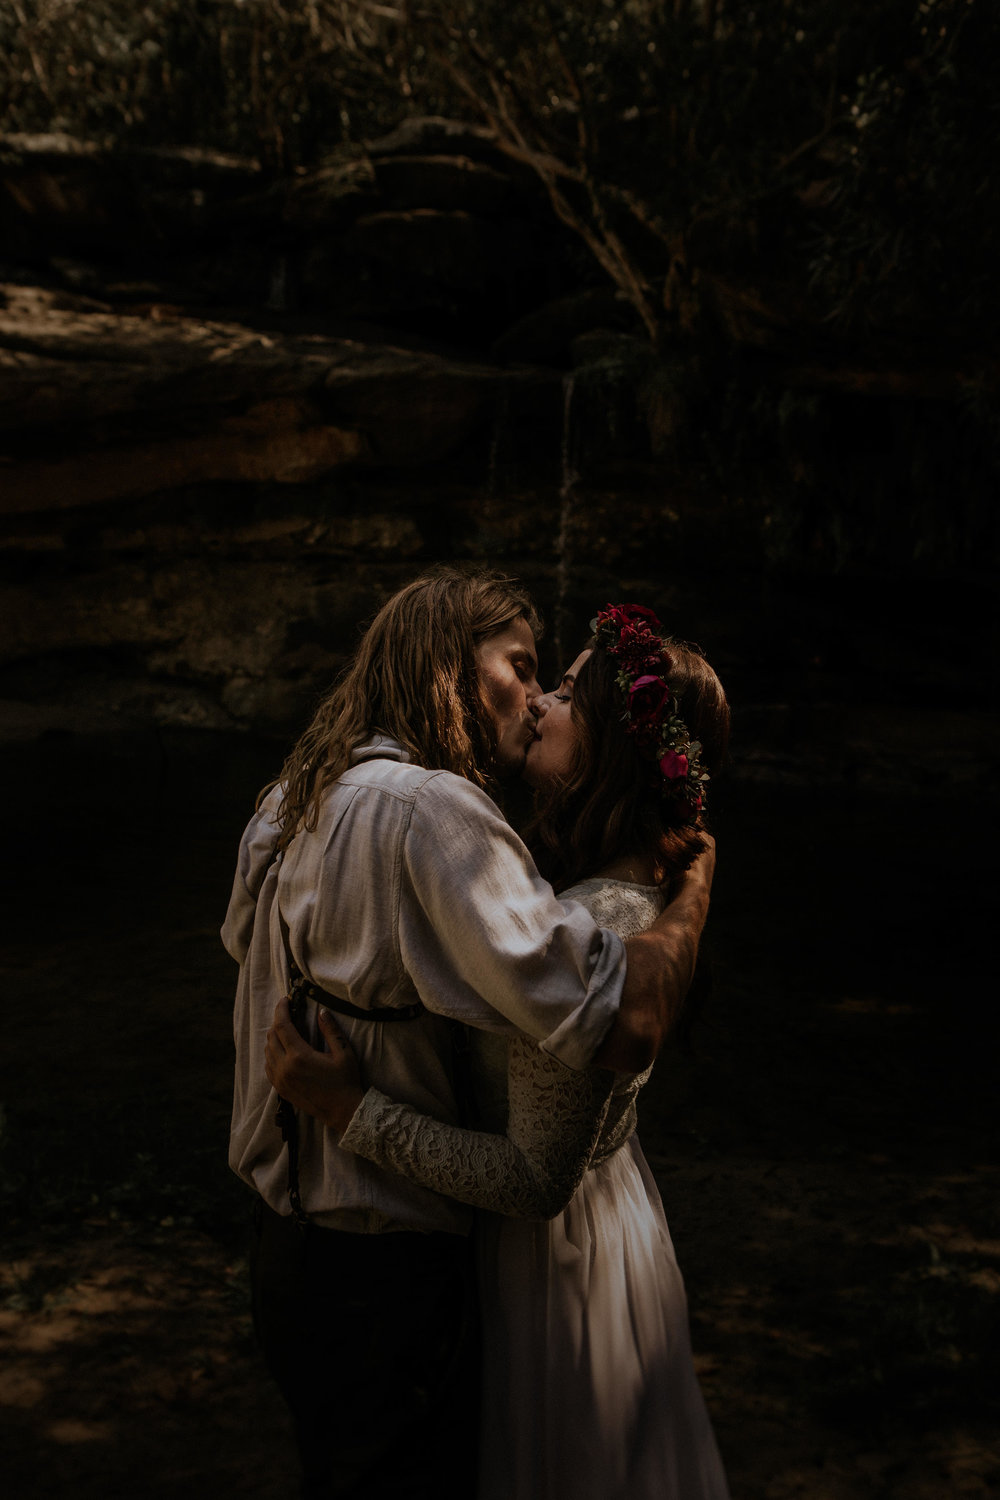 beth & caleb - kings & thieves elopement wedding photography -- submission 103.jpg